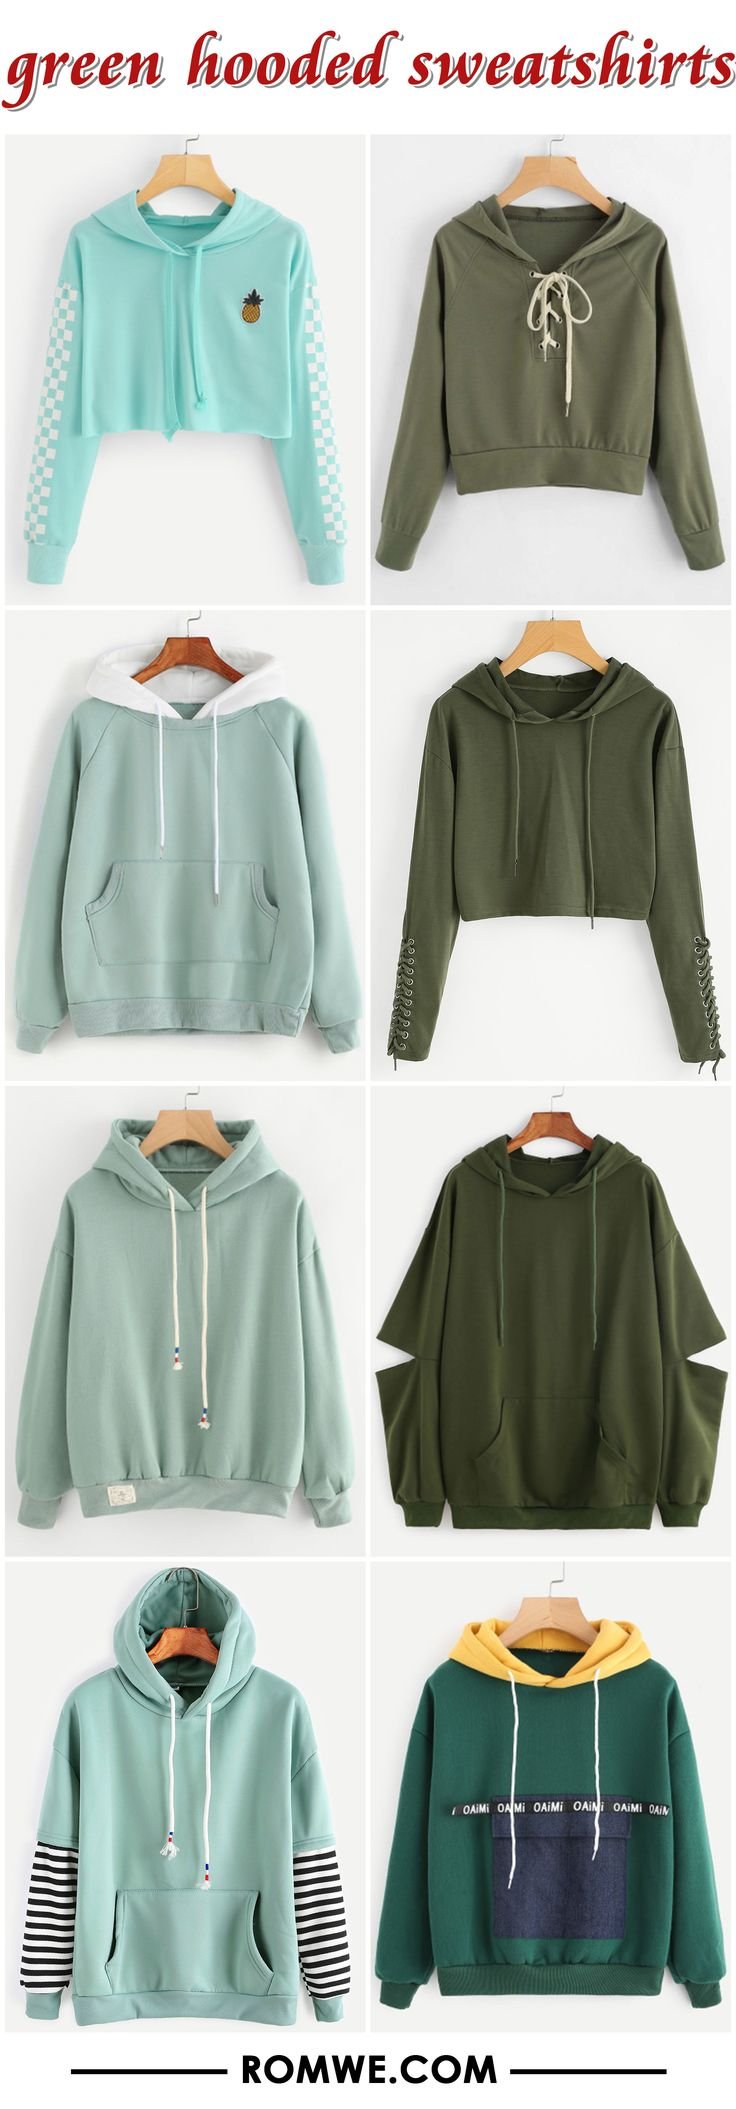 green hooded sweatshirts from romwe.com